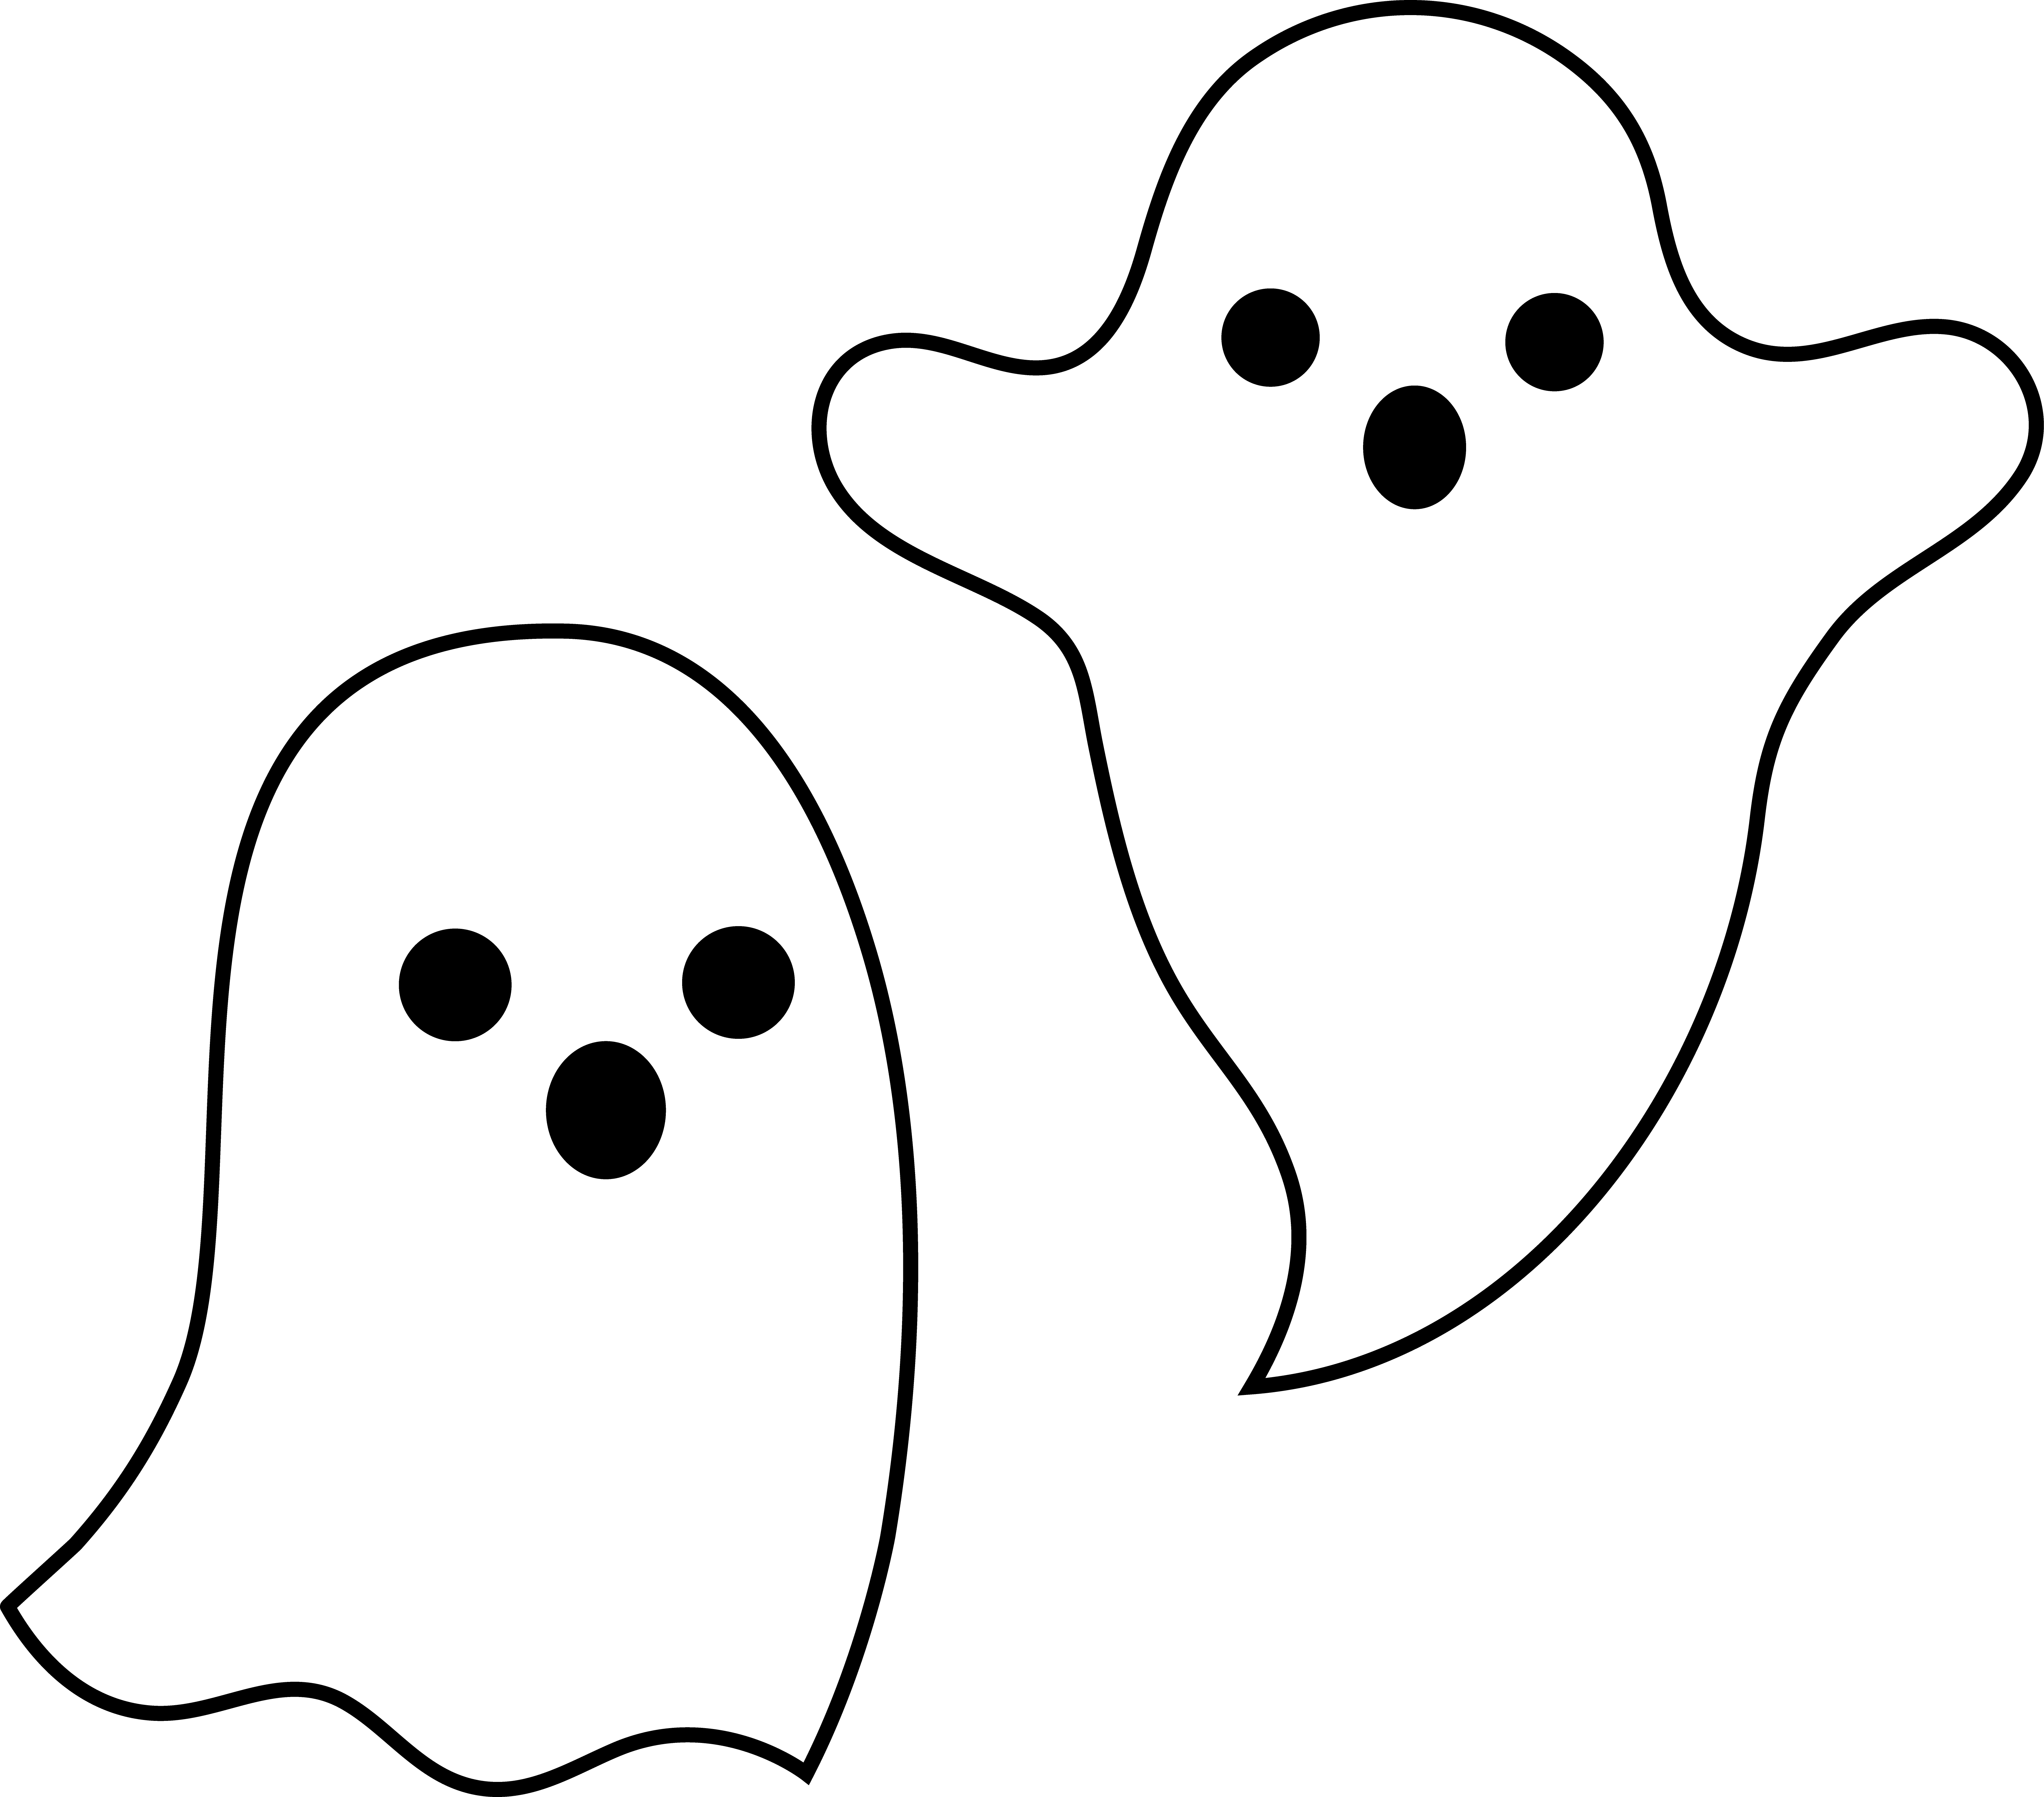 Clipart ghost october. Nuns and ghoulies all